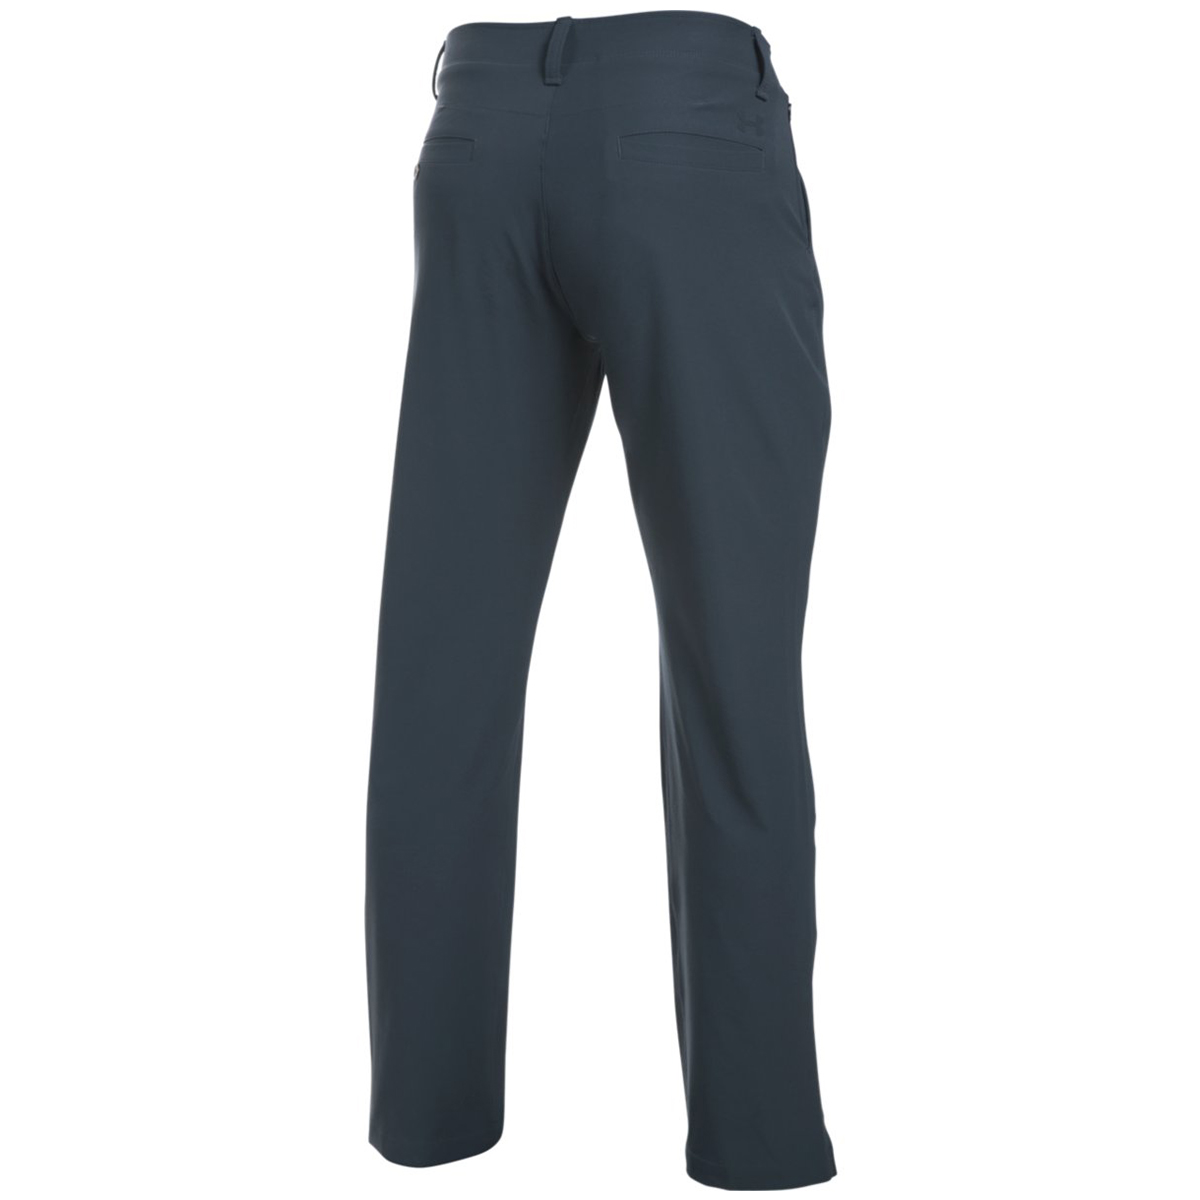 Under-Armour-Mens-Match-Play-ColdGear-Infrared-Taper-Golf-Trousers-52-OFF-RRP thumbnail 23